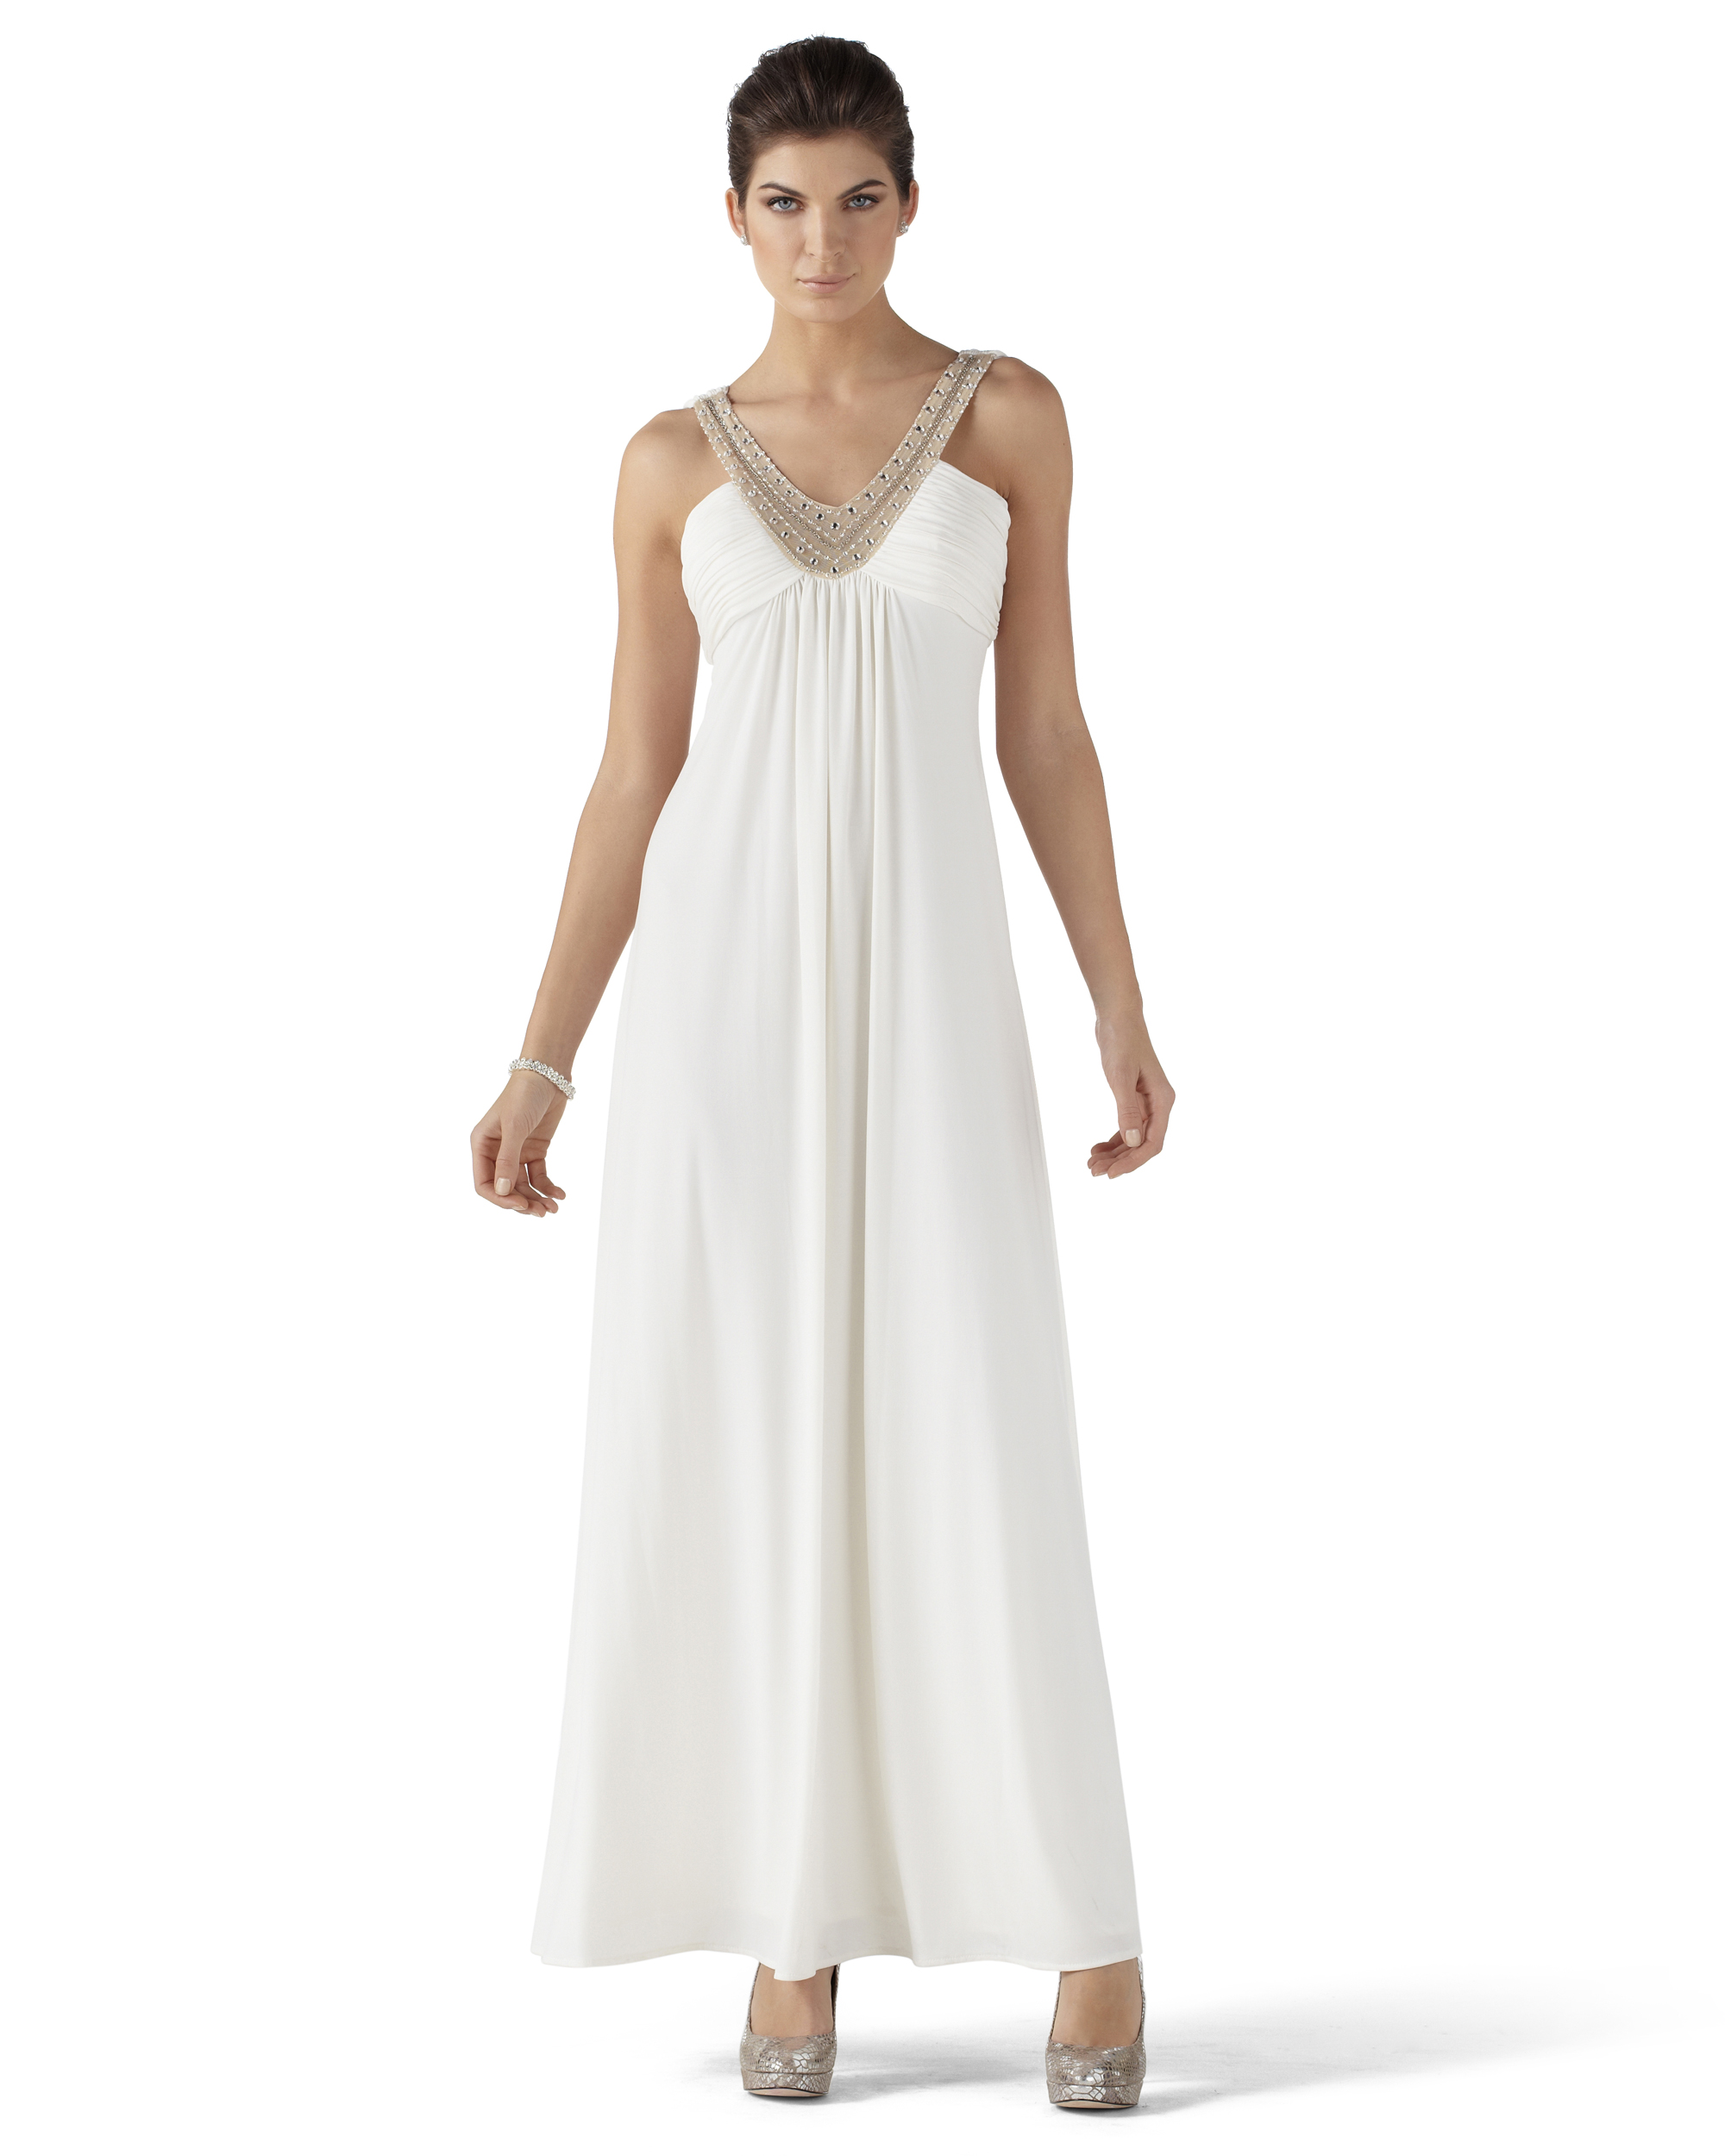 Find great deals on eBay for white house black market dress. Shop with confidence.